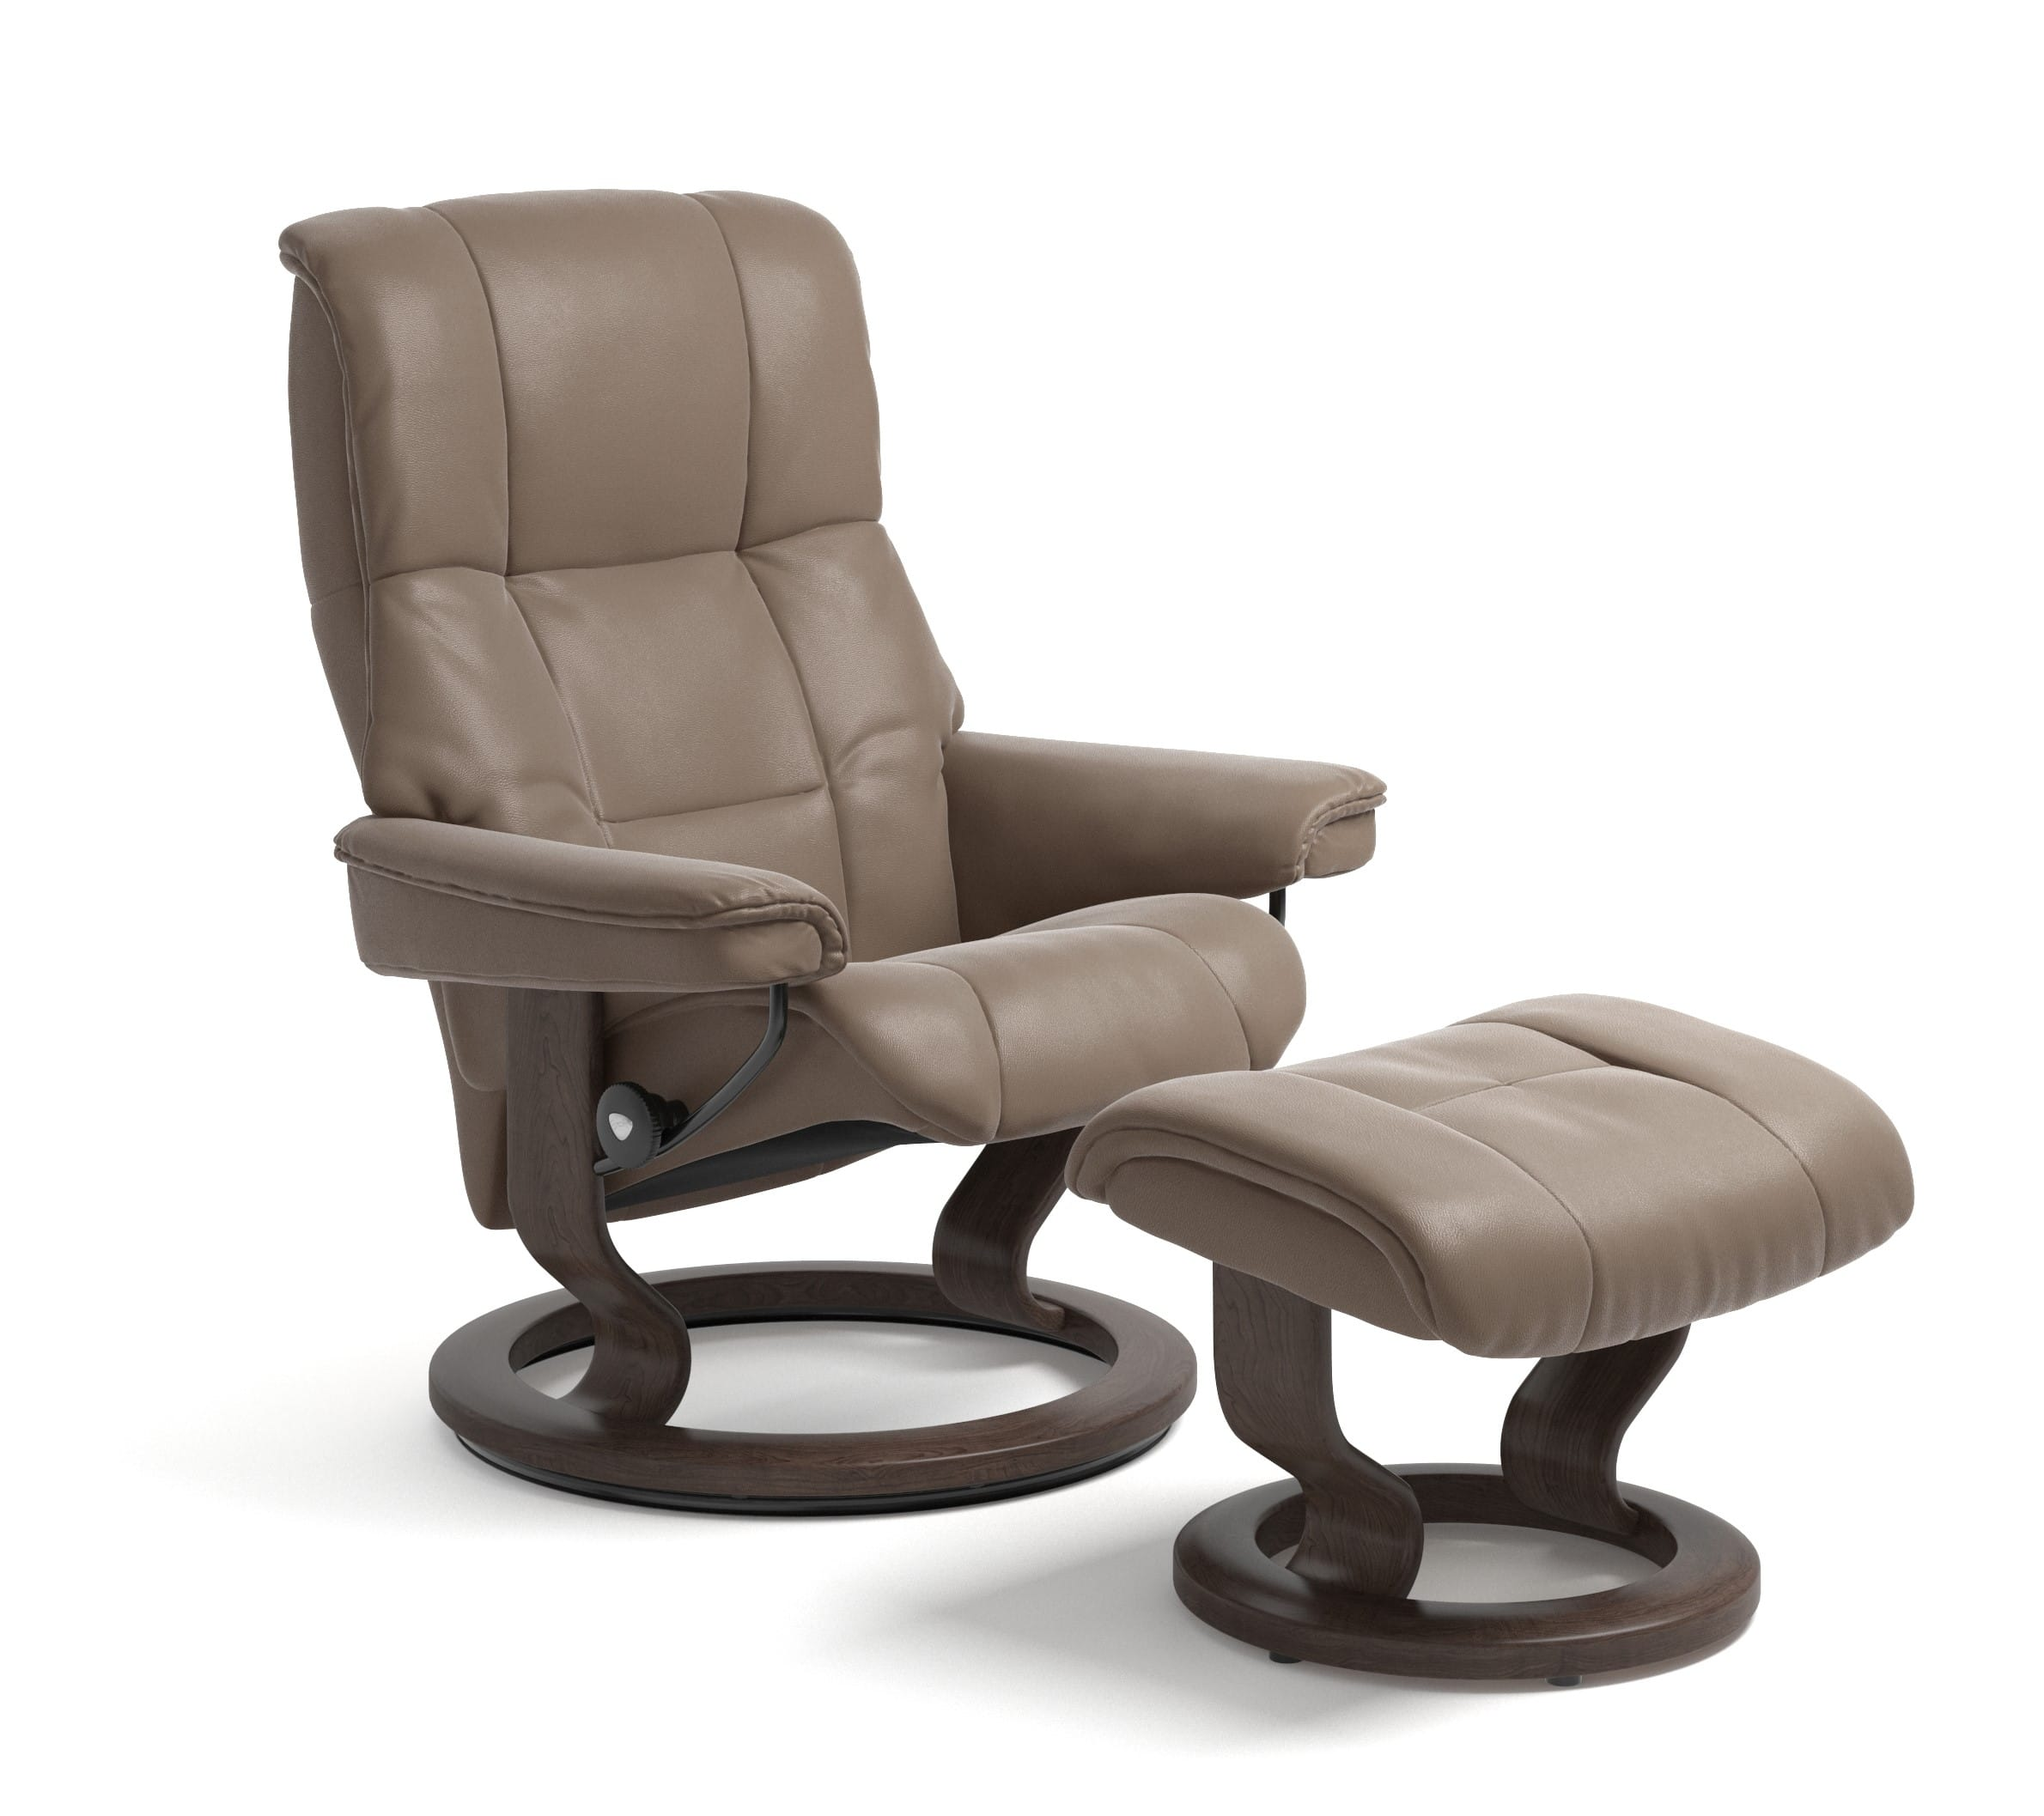 Stressless Mayfair Classic 1